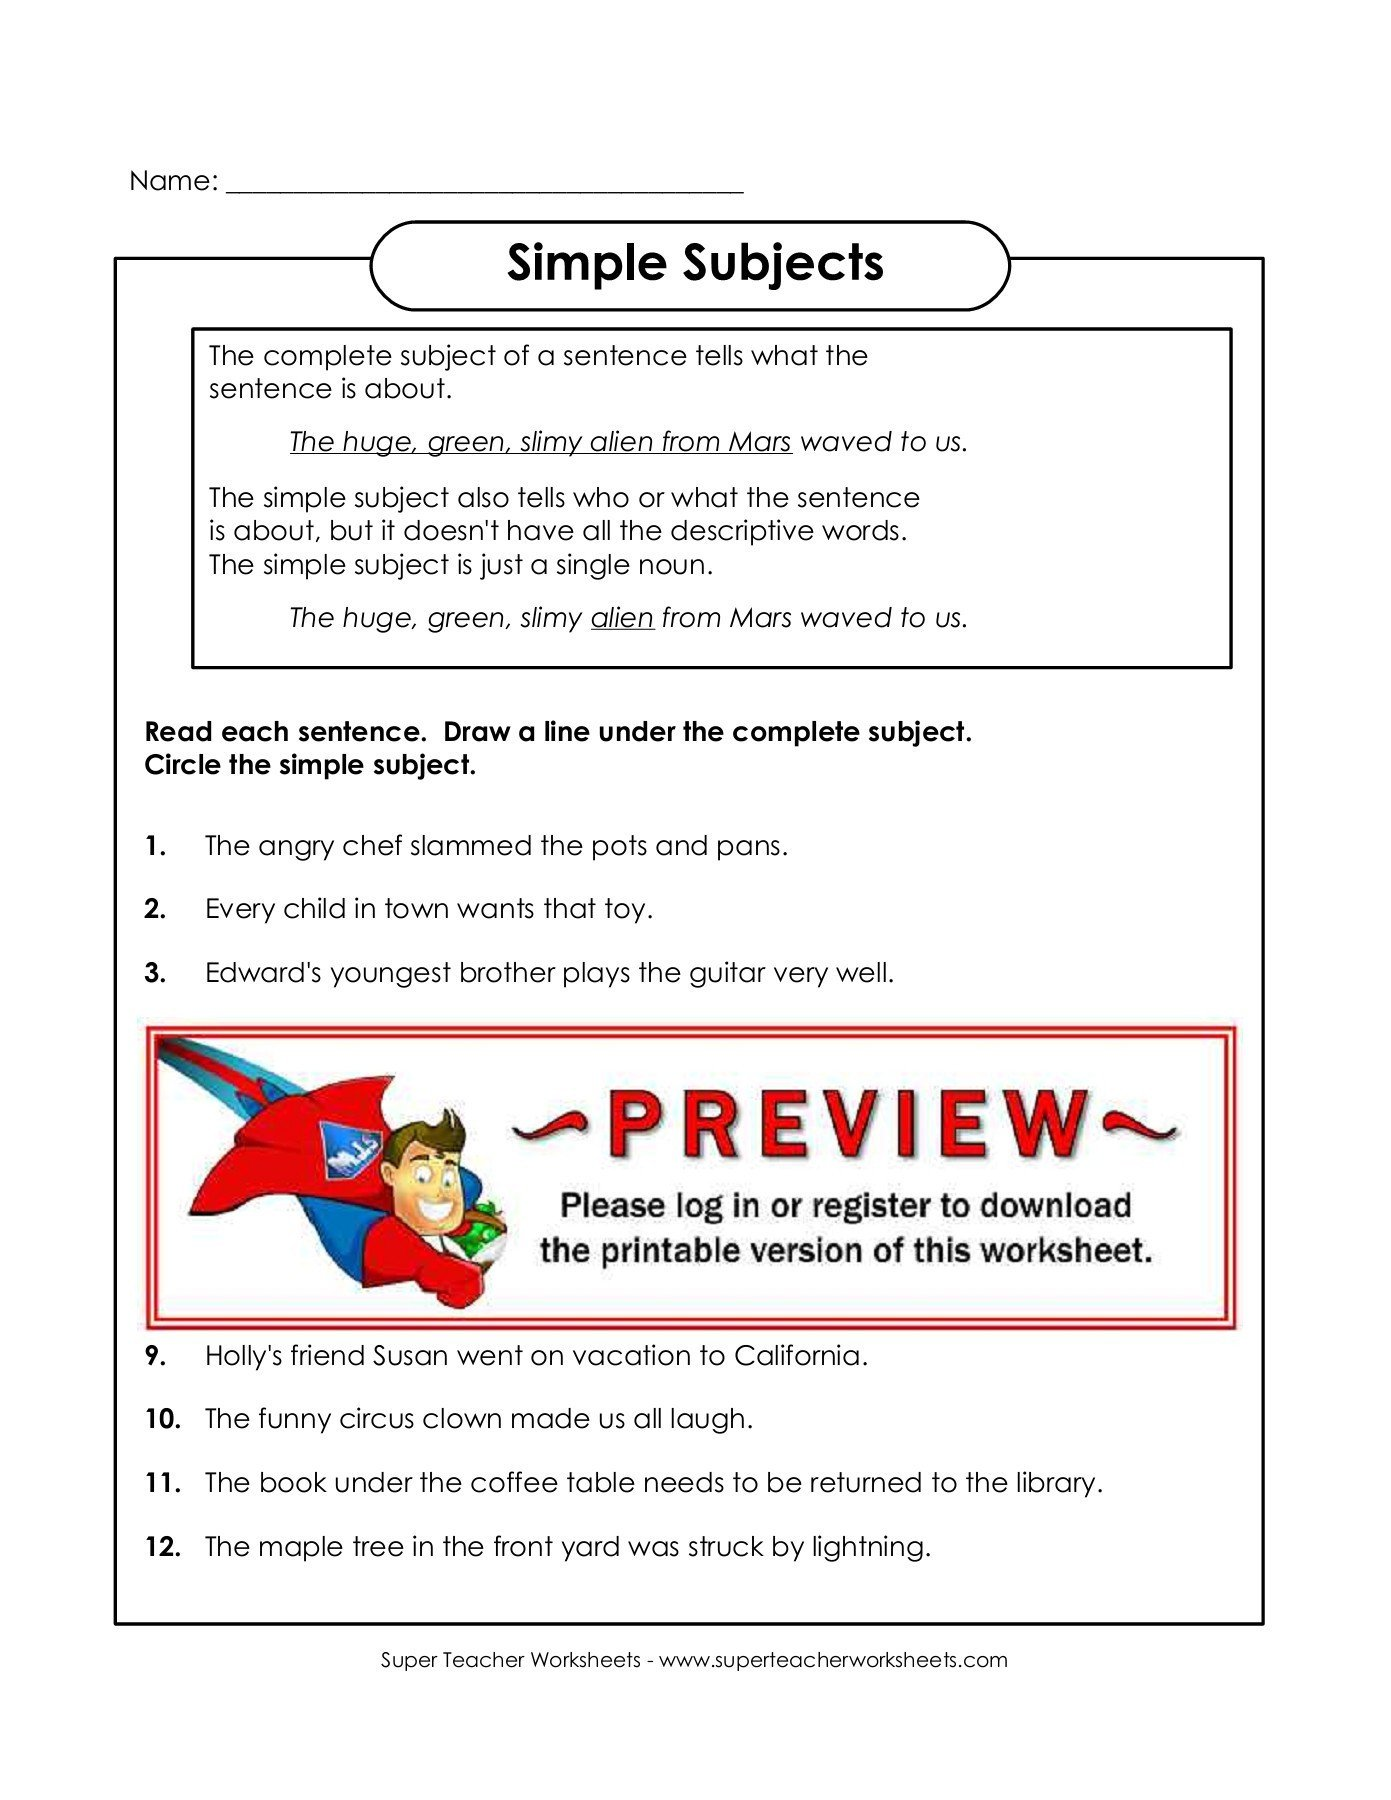 20 Super Teachers Worksheets Login